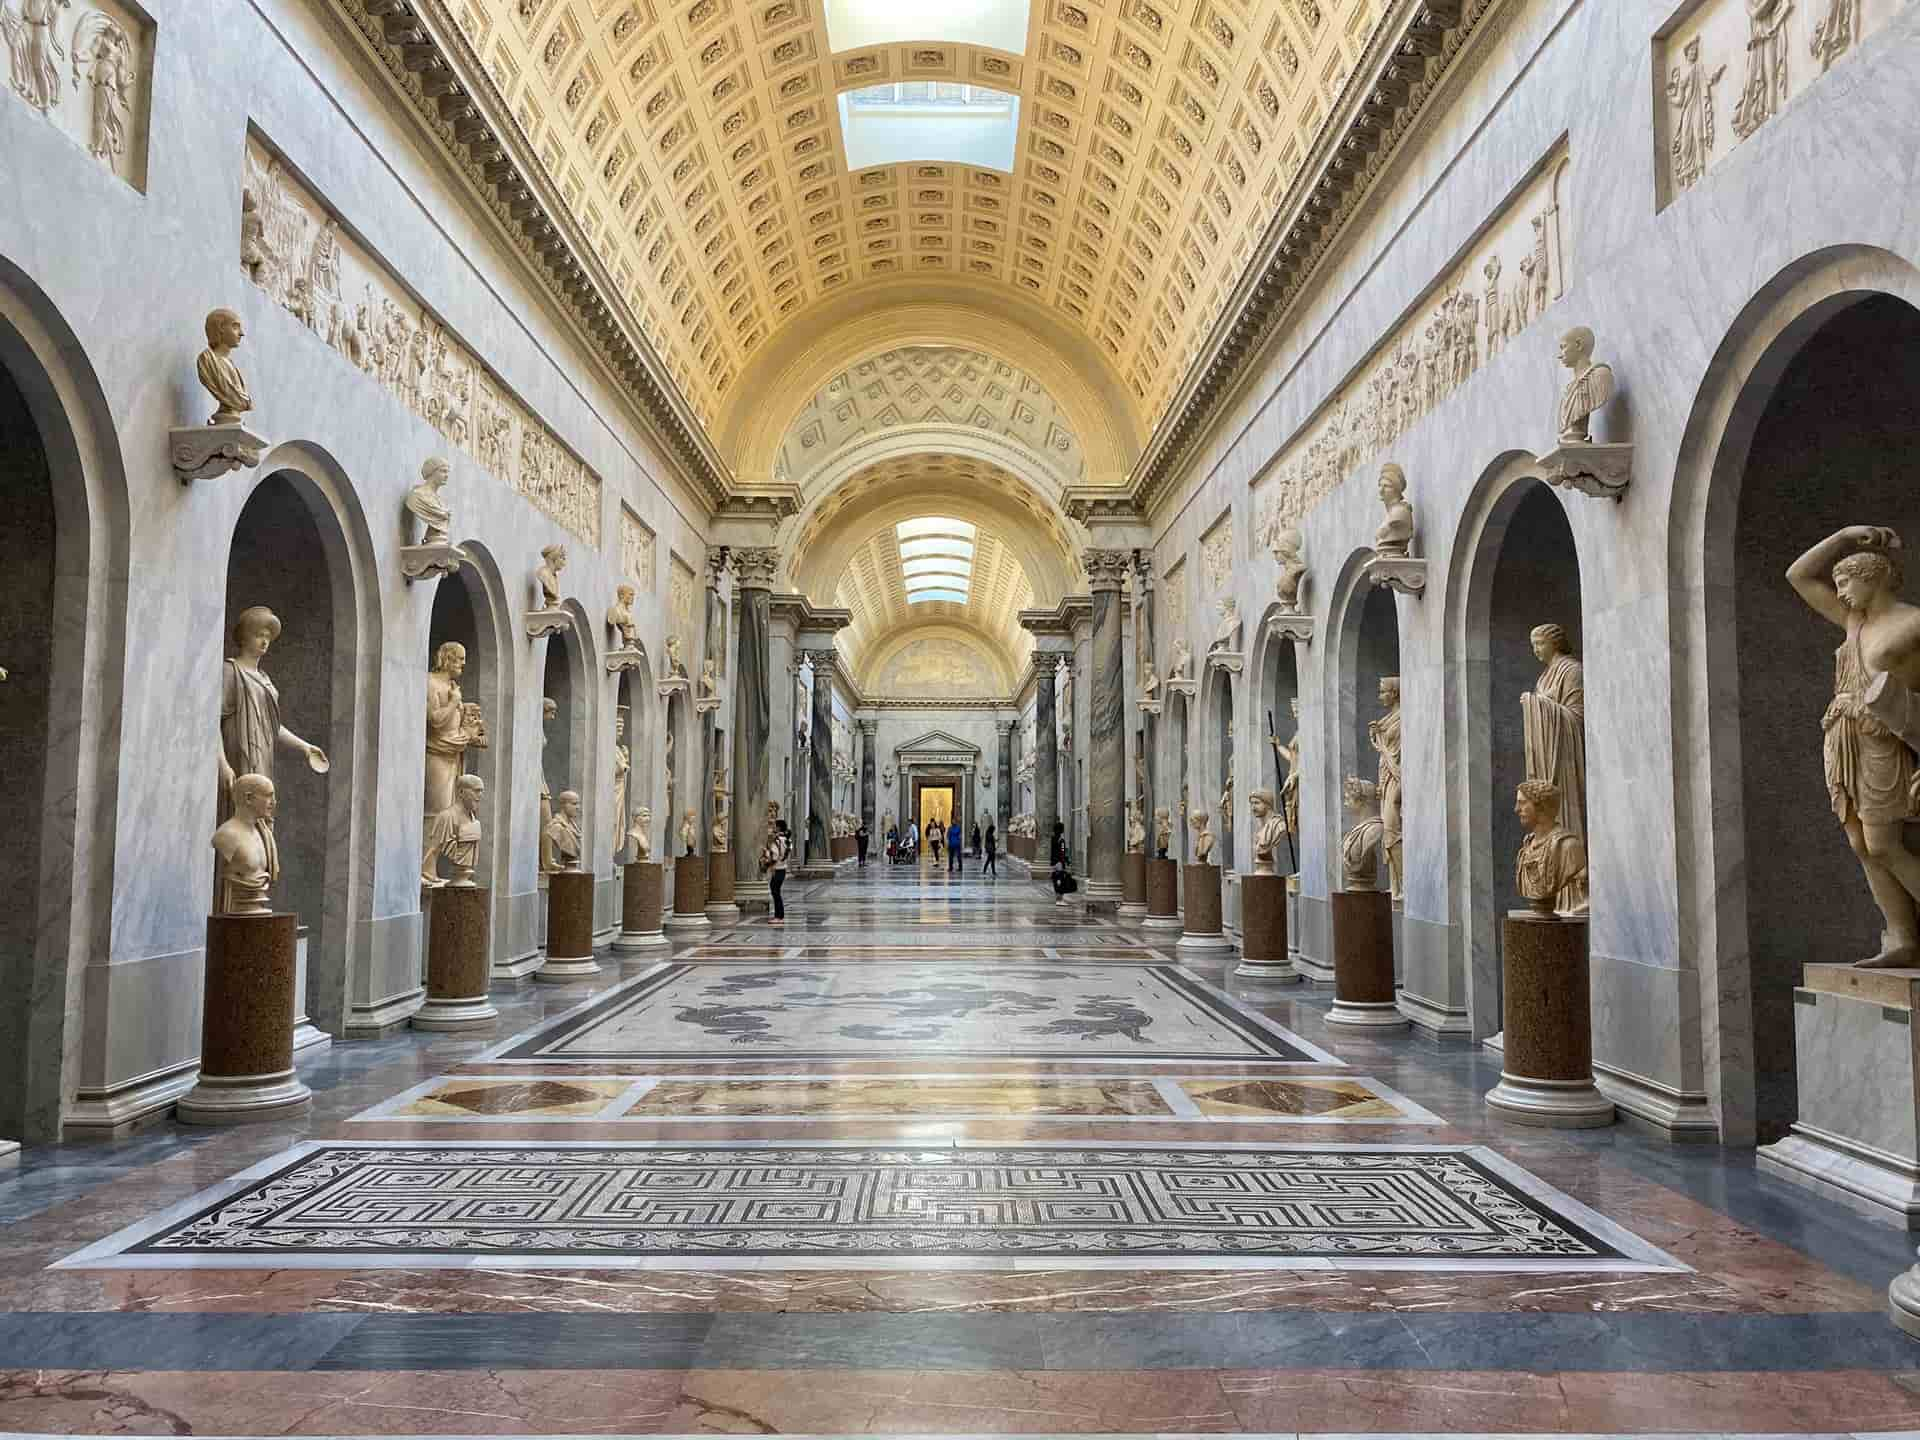 Guide to the Most Breathtaking Museums You Can't Miss in Rome!